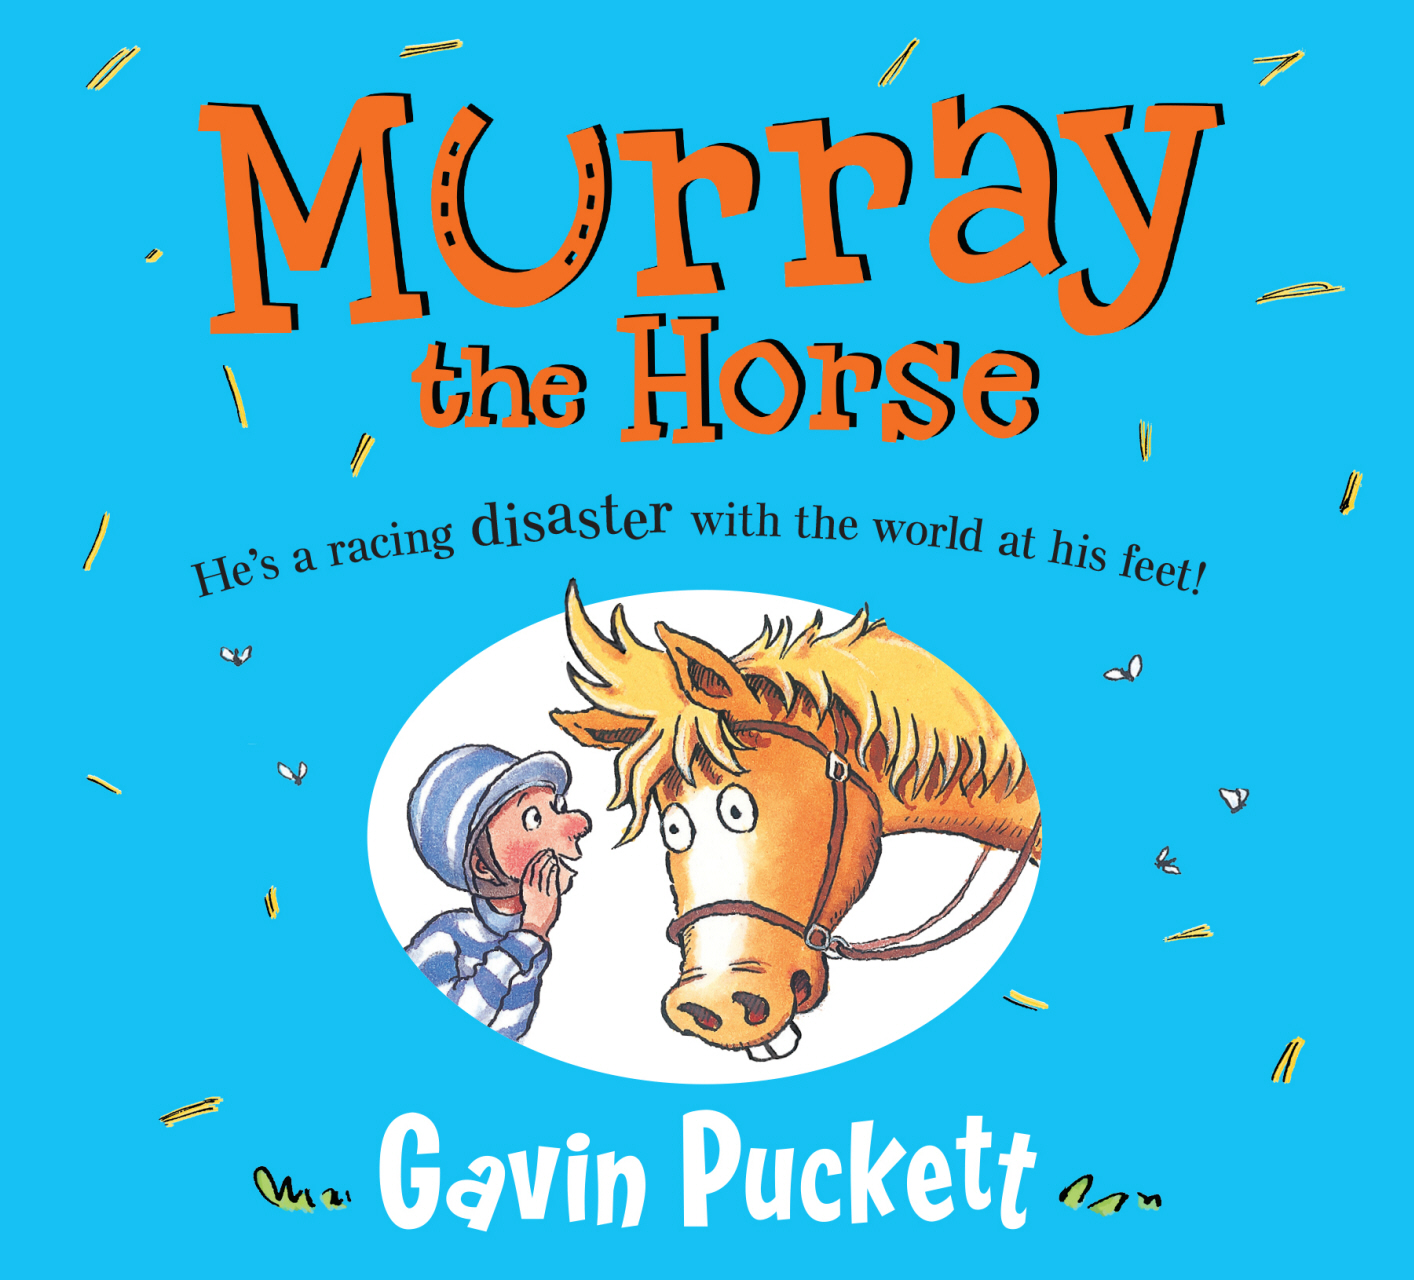 Murray the Horse